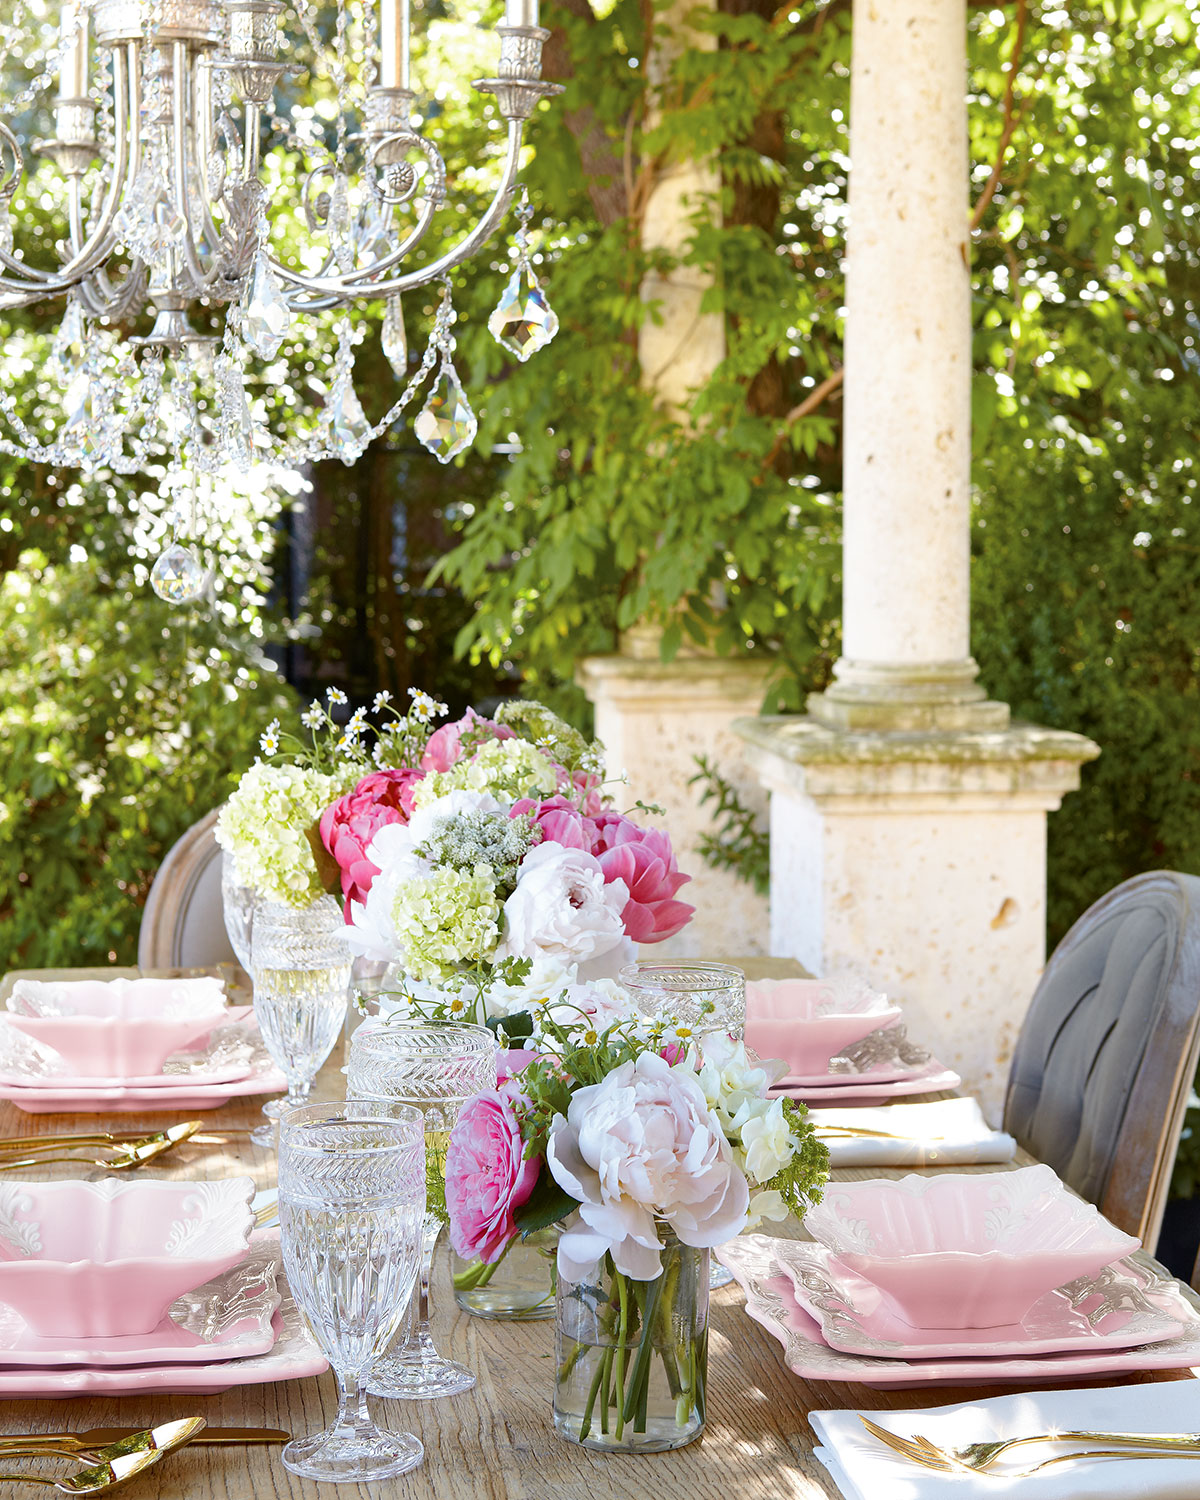 pink and white square plates dinnerware gold knives fork cutlery wedding feminine girly pink spring decor interior design shop room ideas how to set tabletop